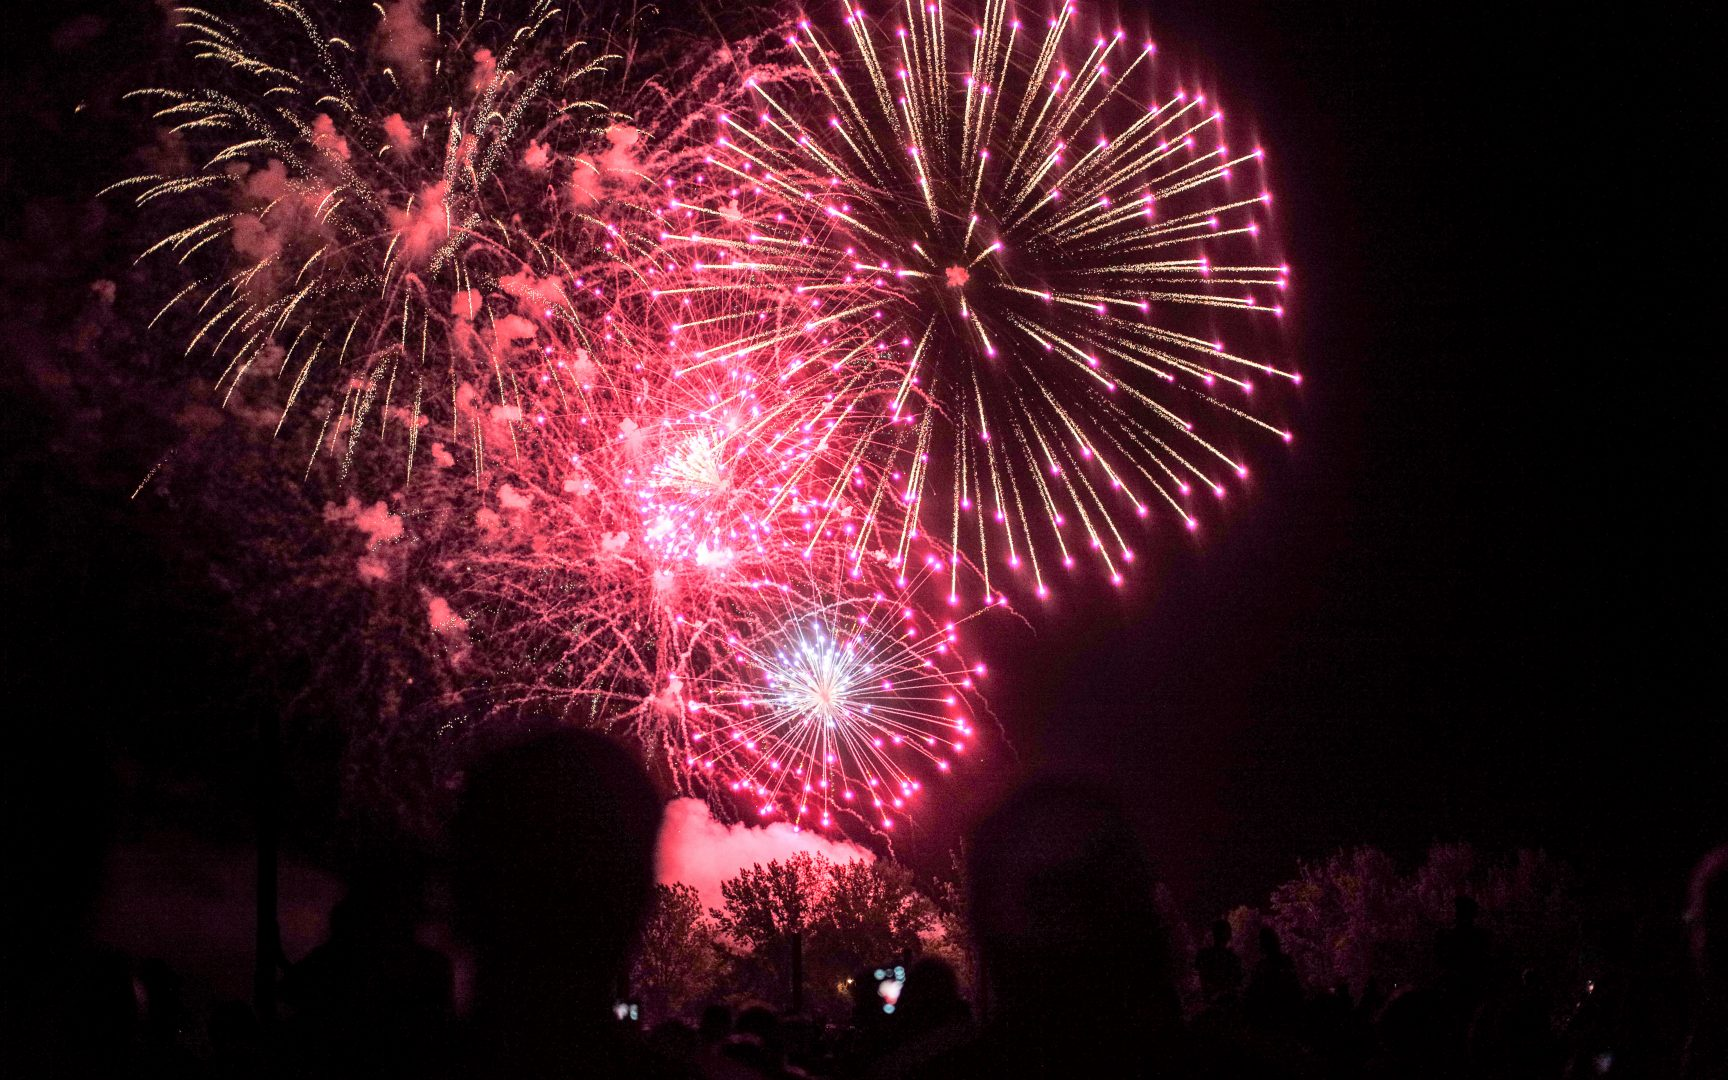 Canada Day Fireworks at Ashbridge's Bay, Photo by Shane Carslake